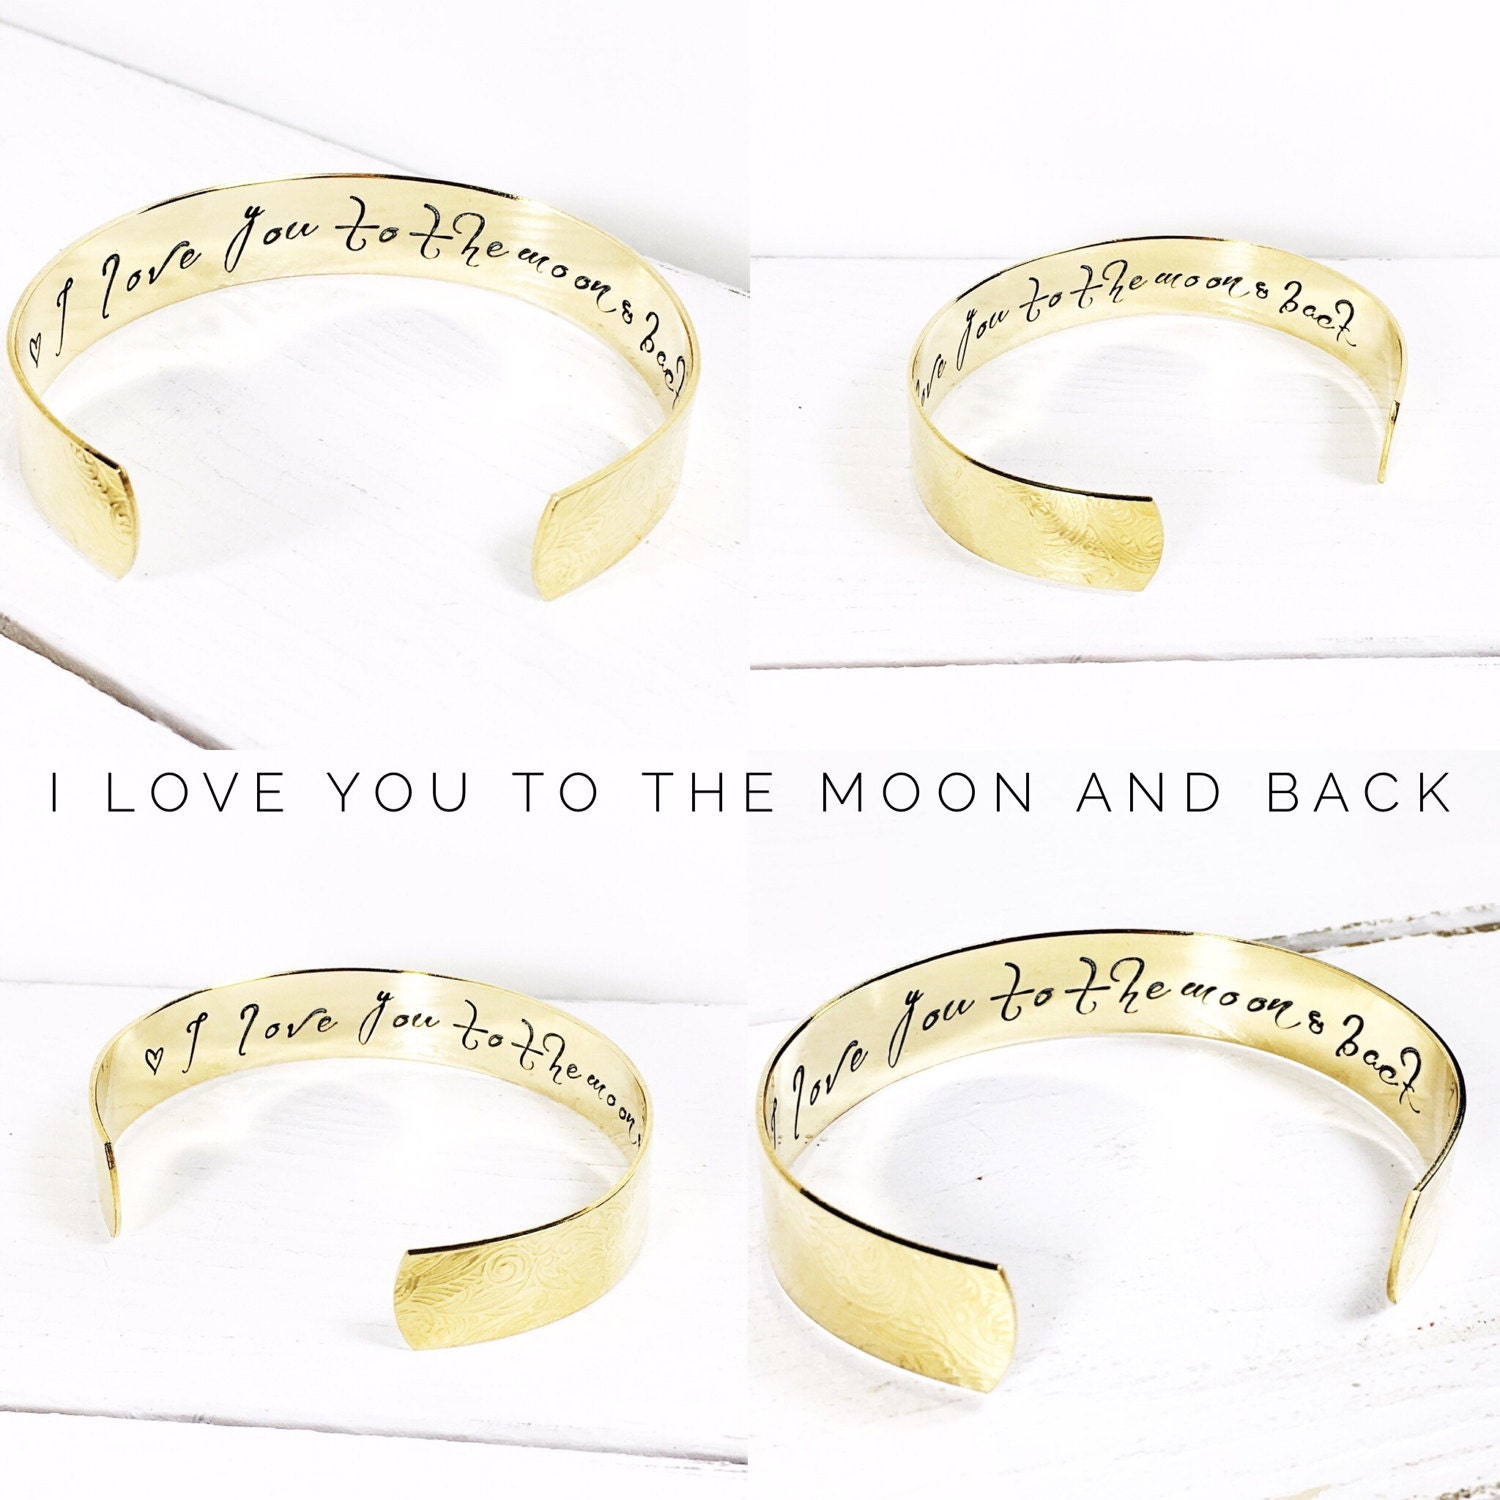 Womens gift  Personalized jewelry  I love you to the moon and back bracelet  Personalized Bracelet  Gift ideas for her Mom Gifts (C110)